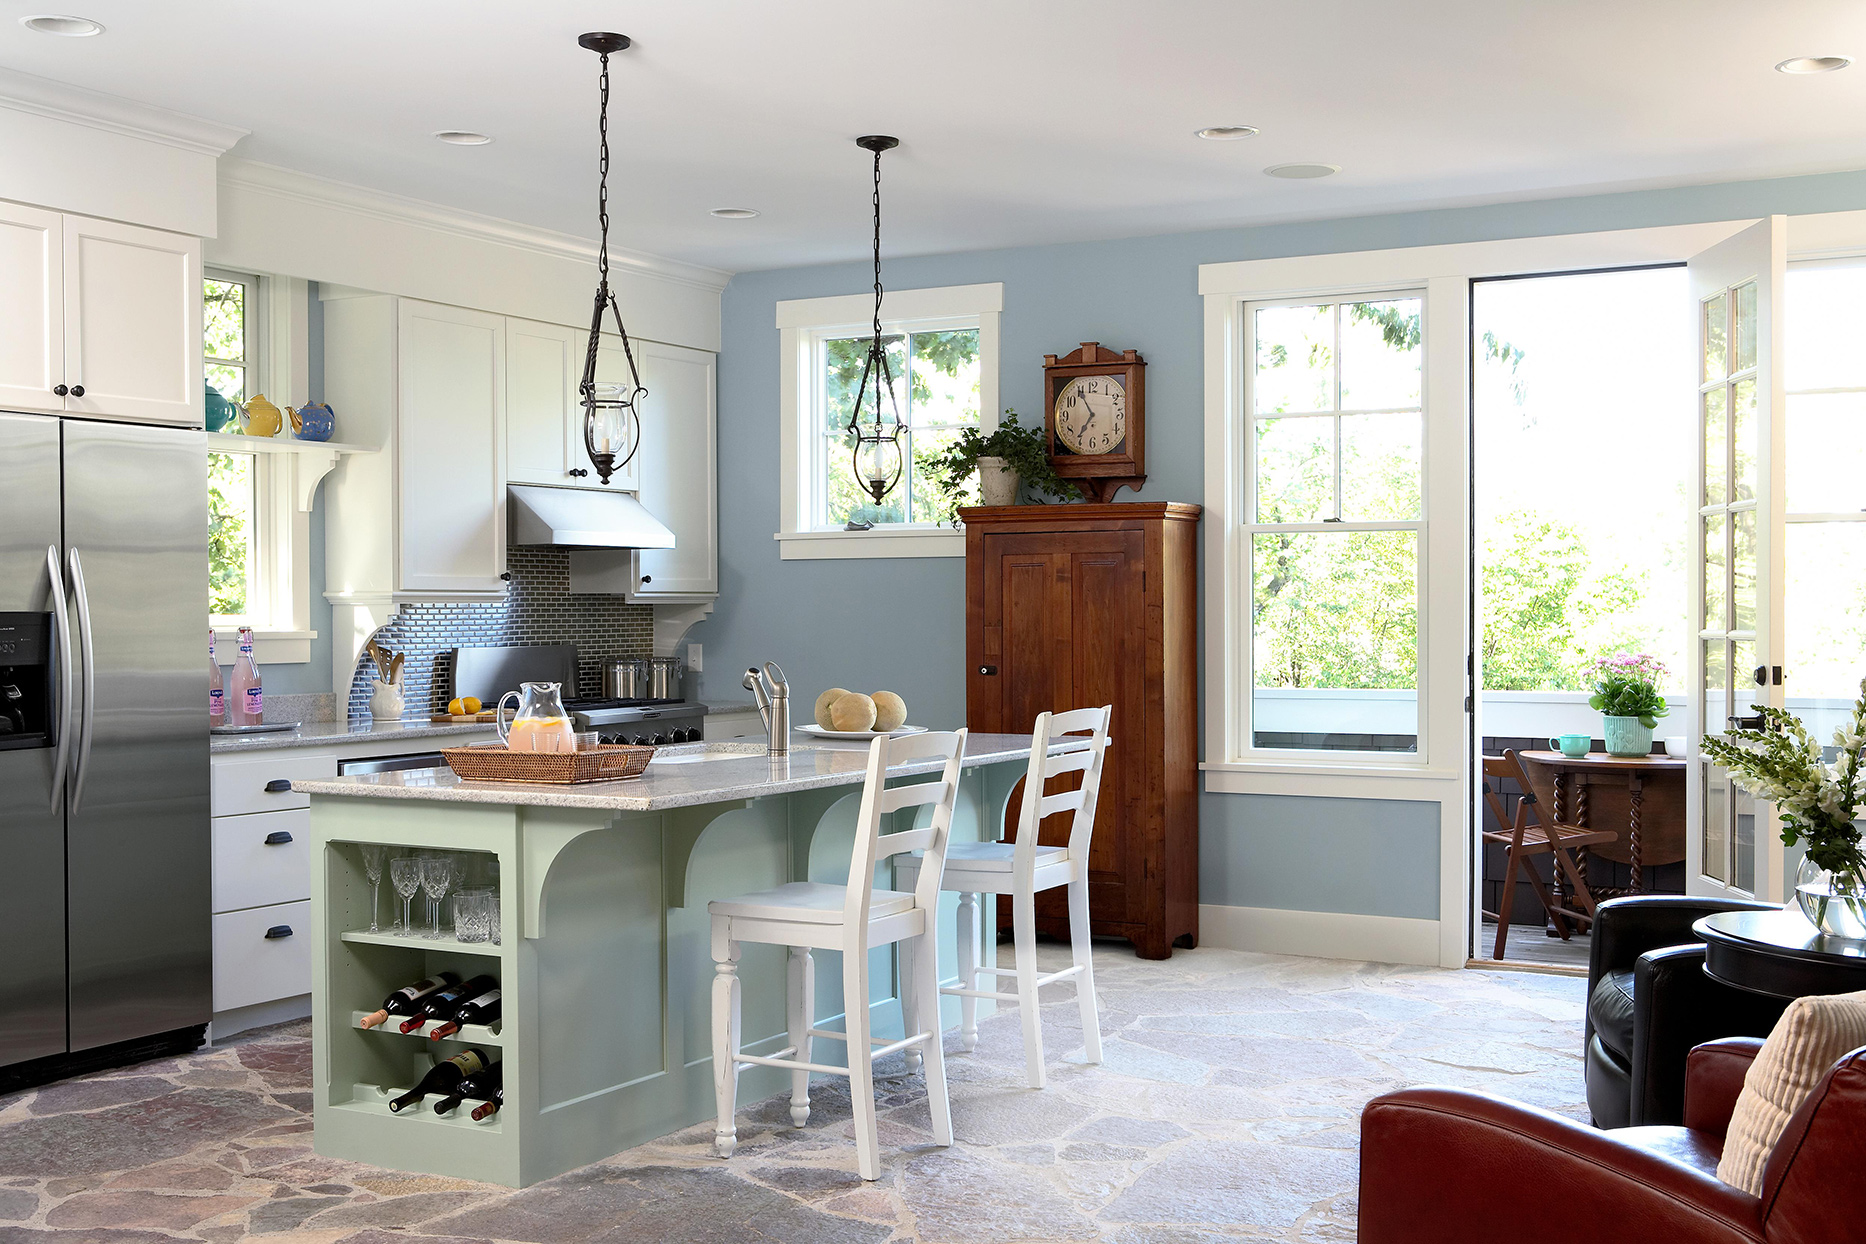 pastel blue, teal, and white kitchen